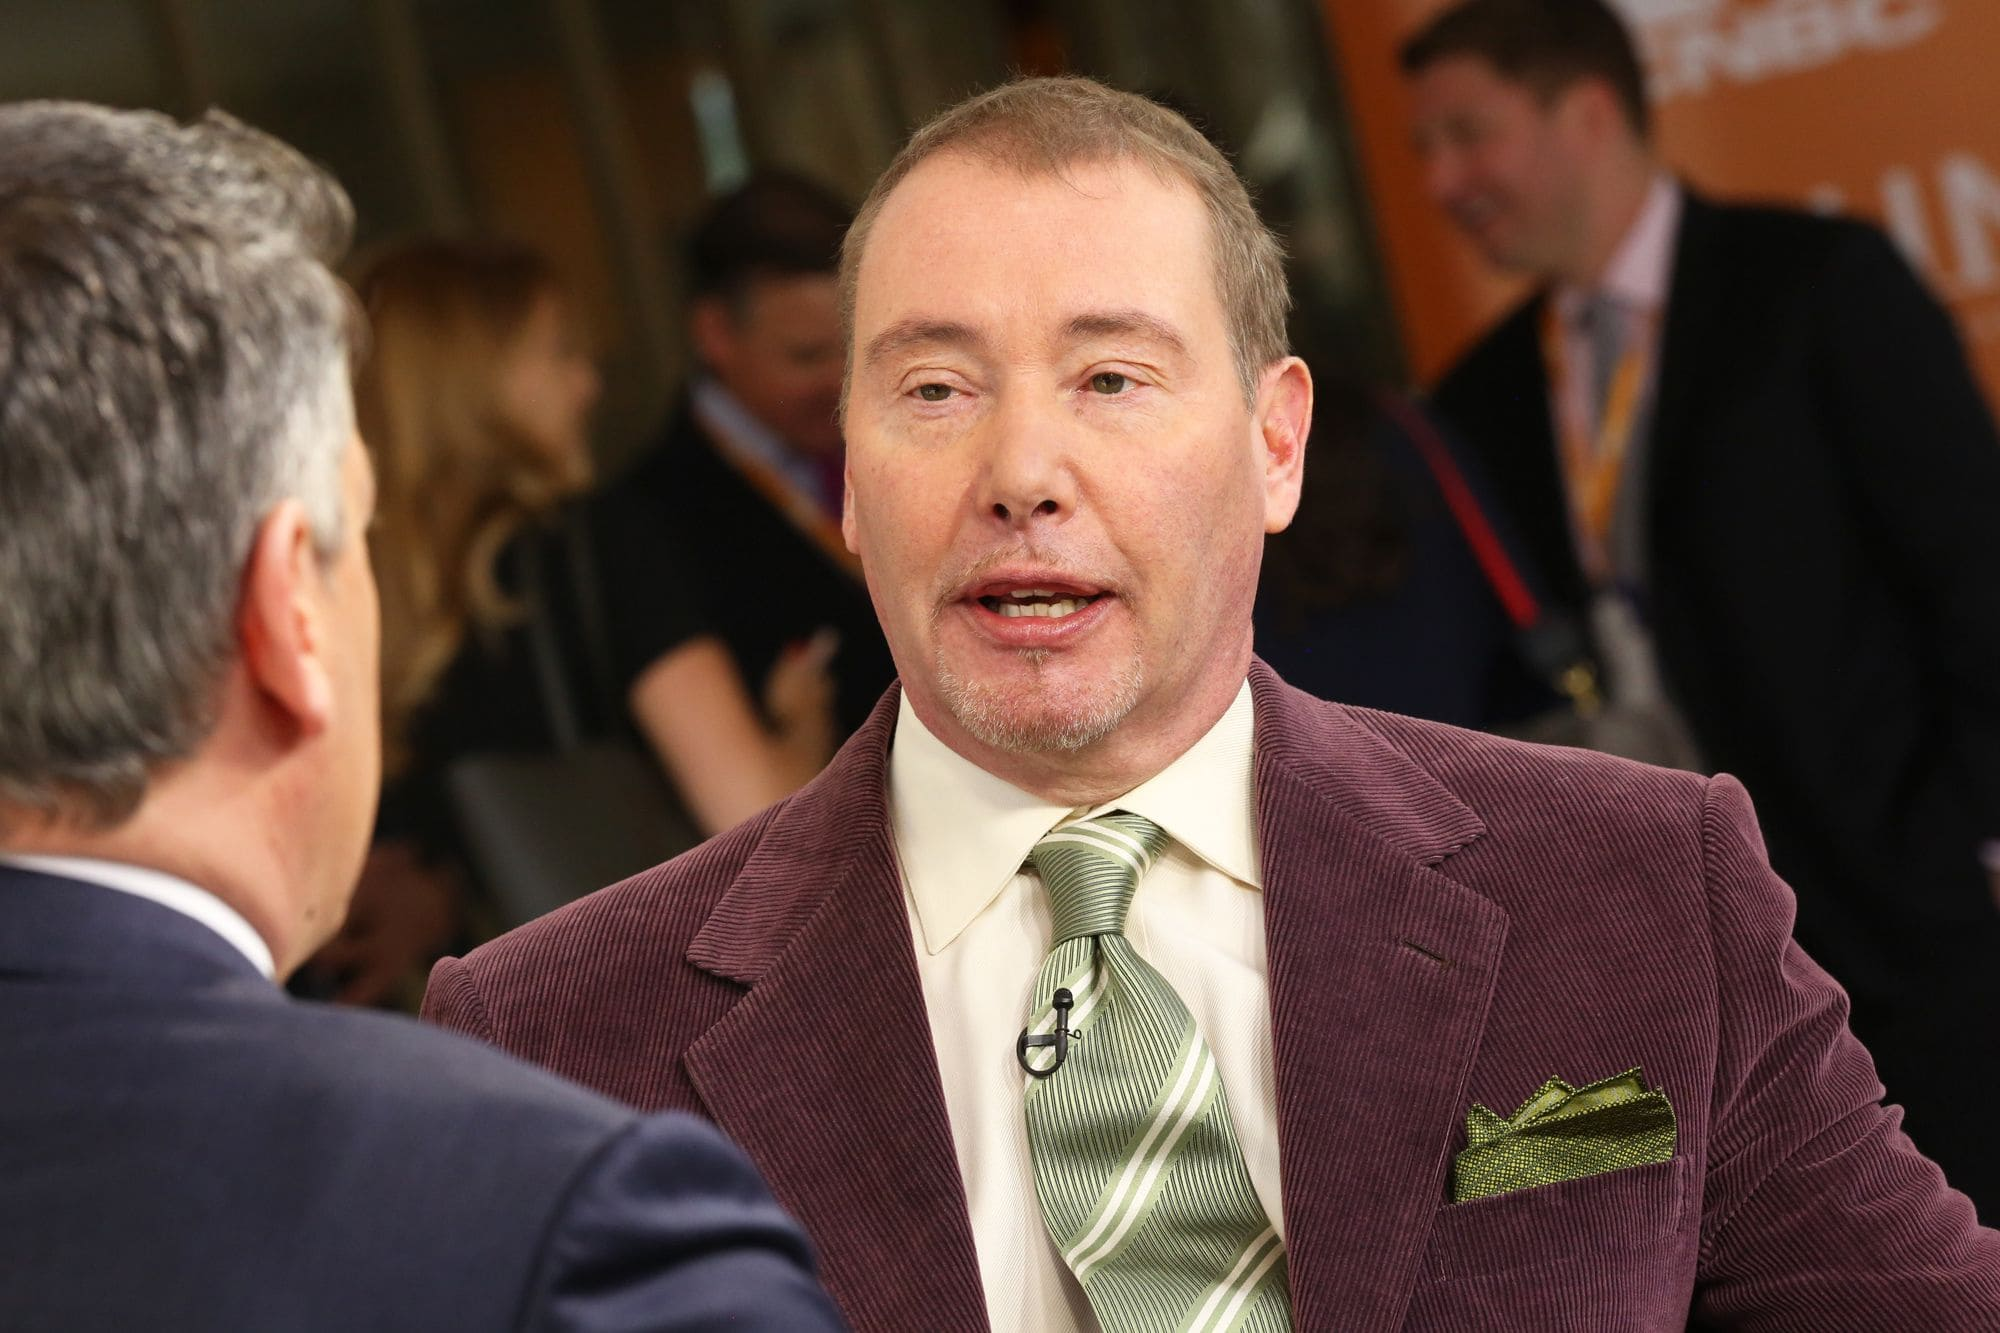 Economy shows more signals of recession says Bond King Jeffrey Gundlach